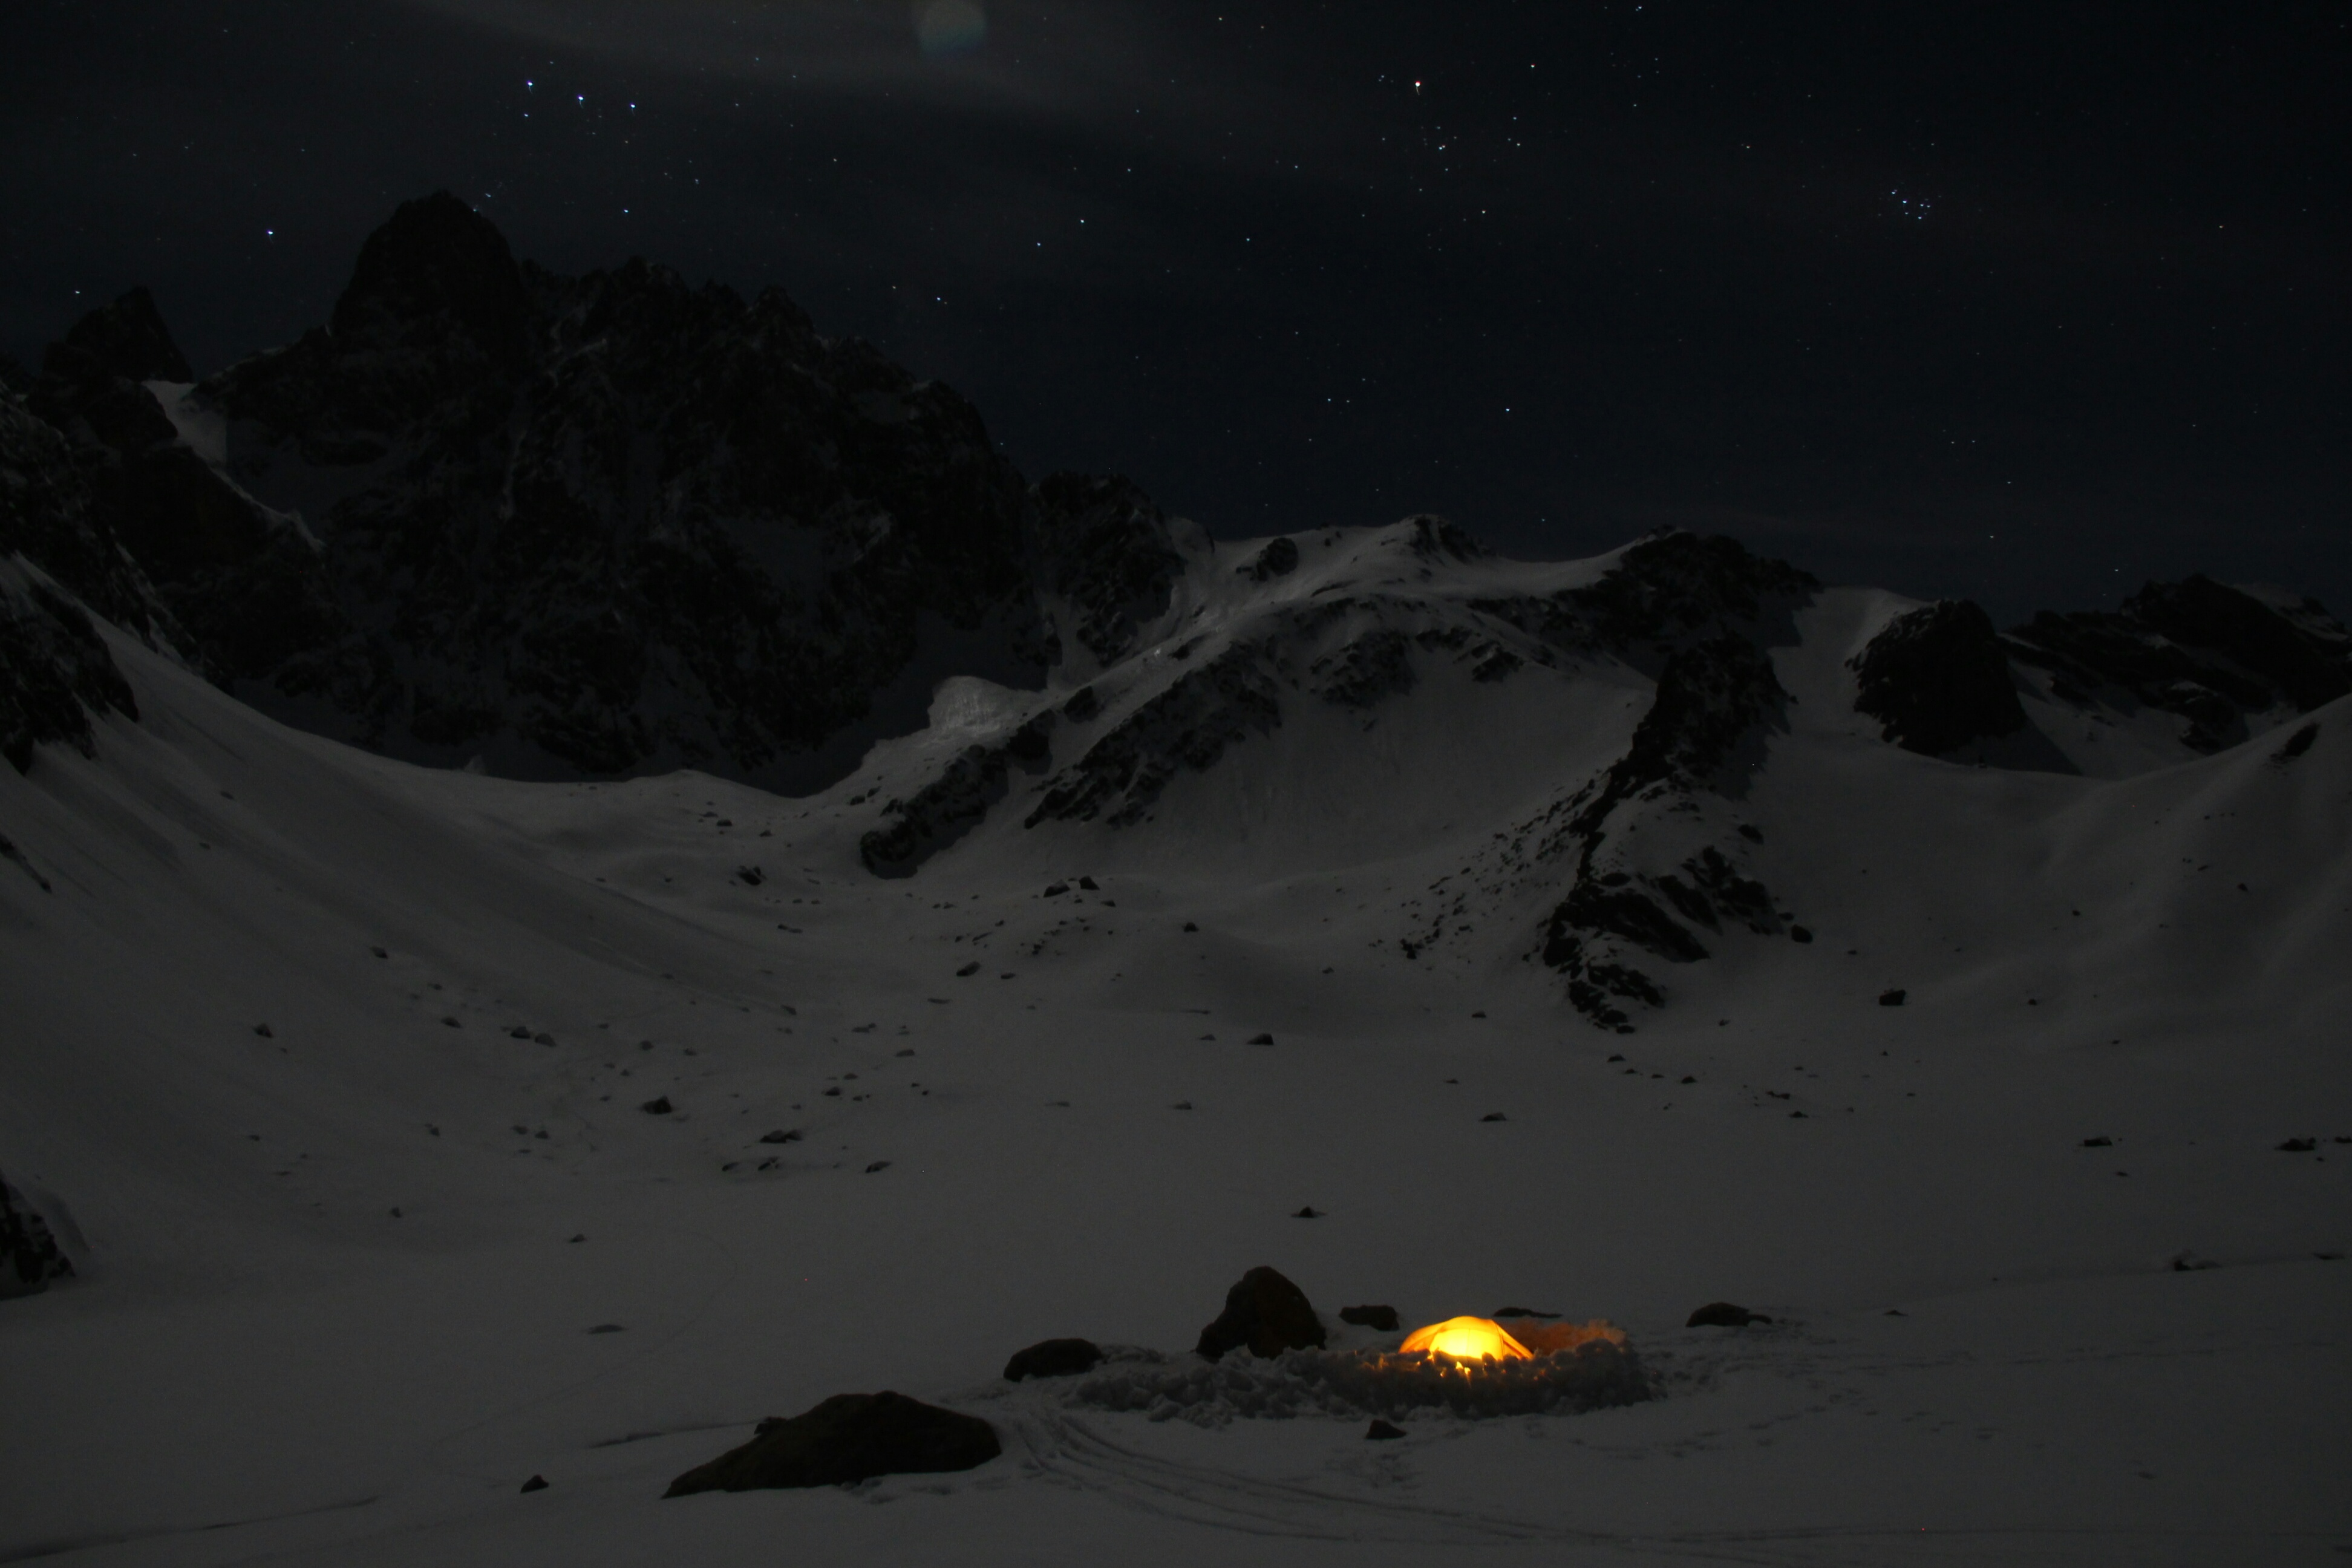 """Camping in the """"Heaven and Hell"""" valley, Cilo Dag Mountains, Turkey"""